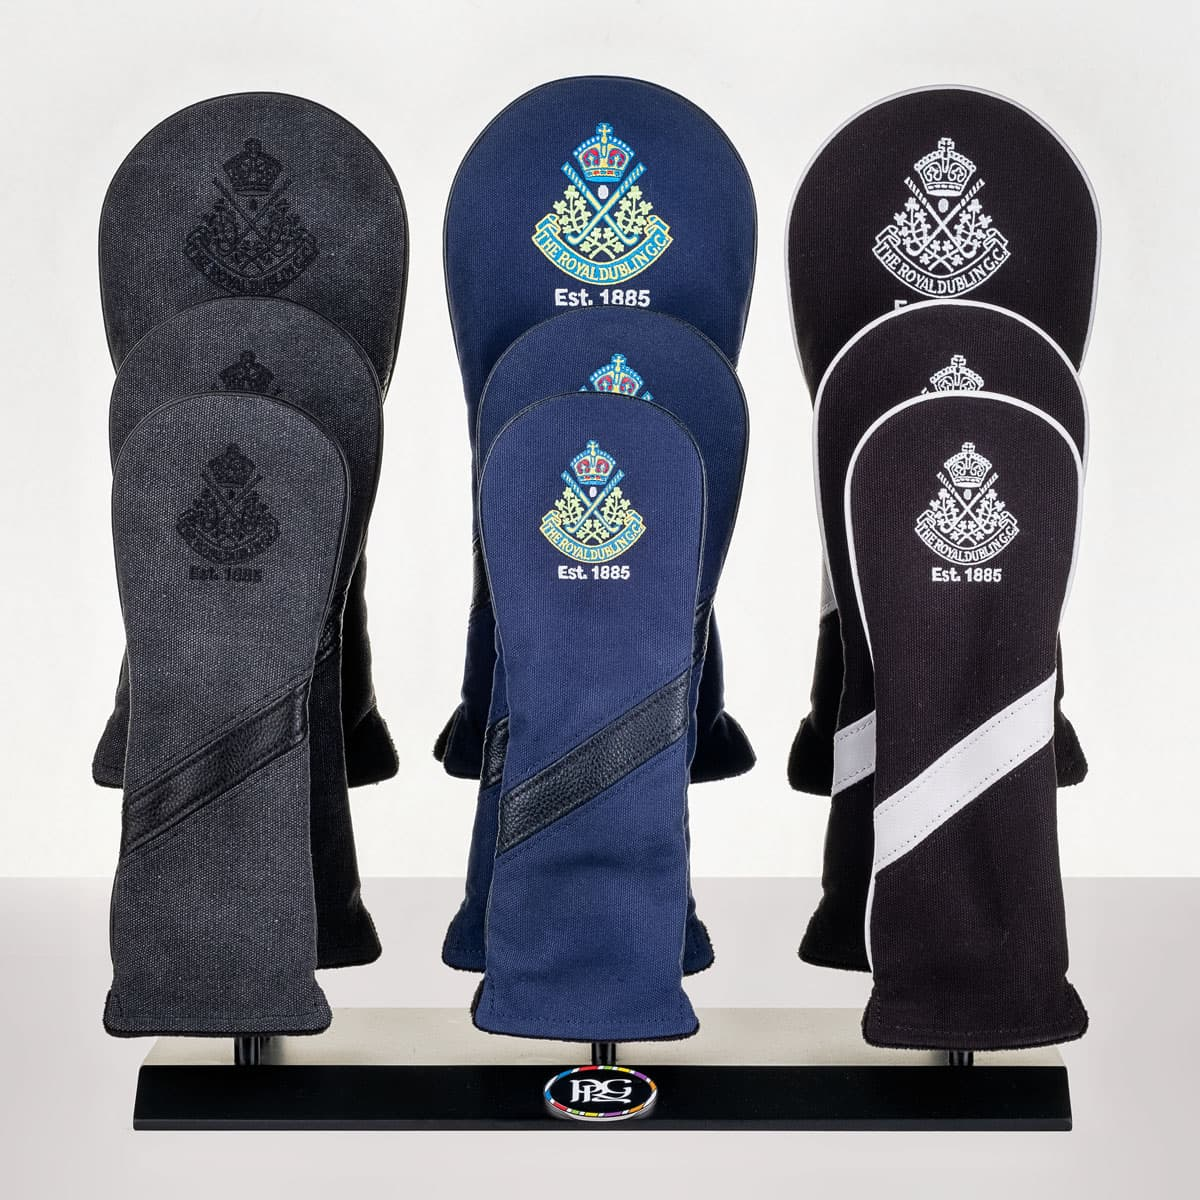 Vanto canvas headcovers from €34.95 to €39.95